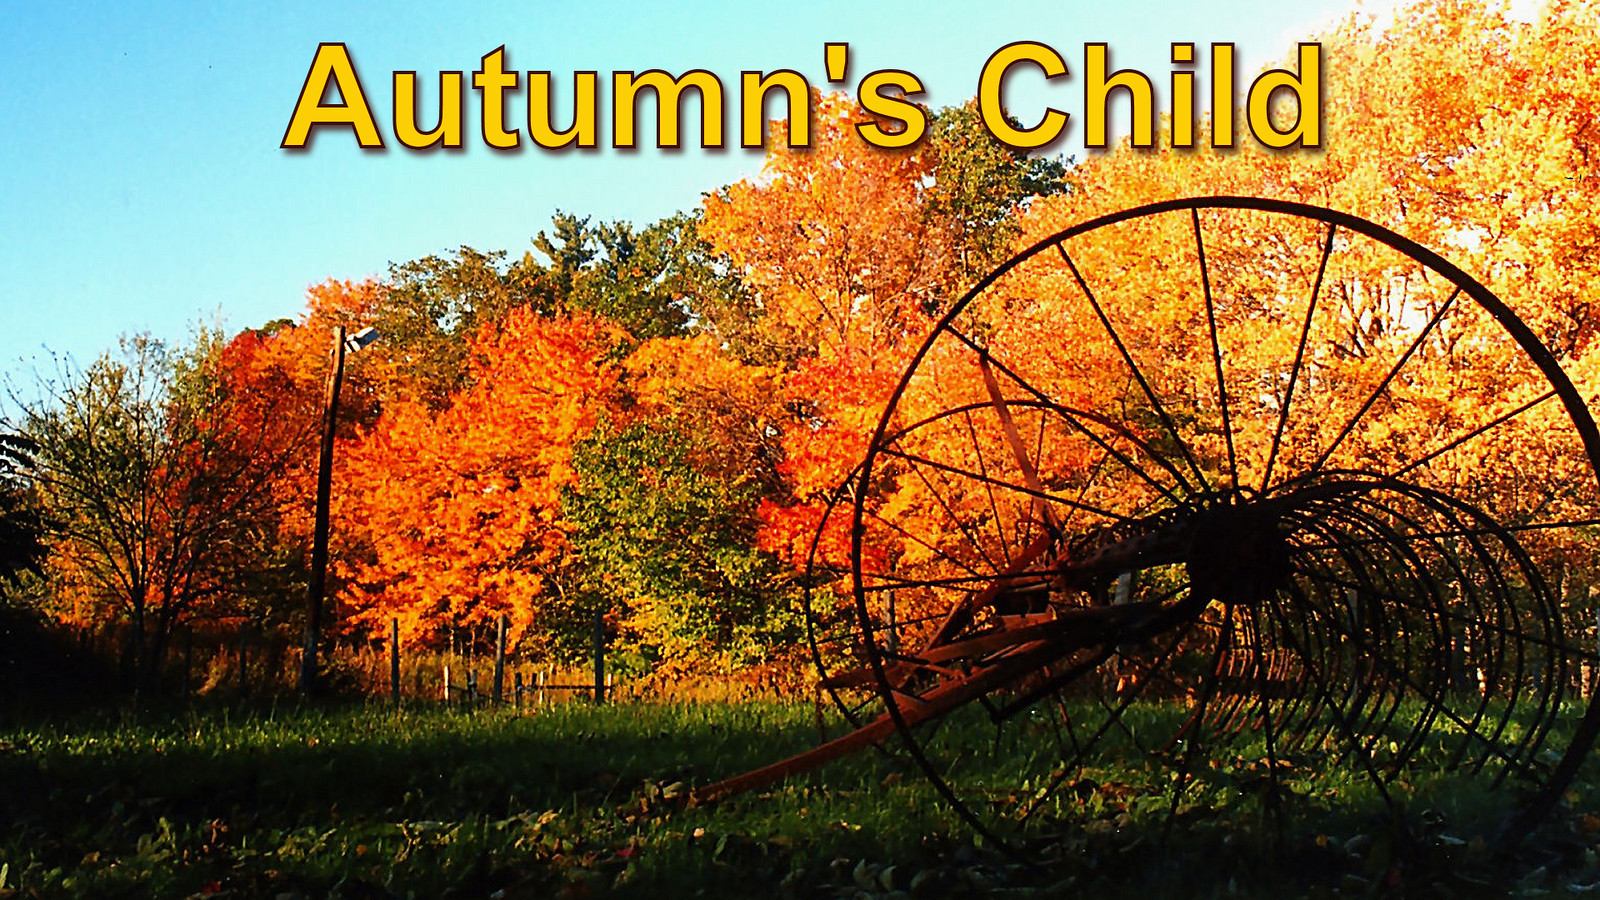 Autumn's Child Musical Slideshow Video - HD Widescreen